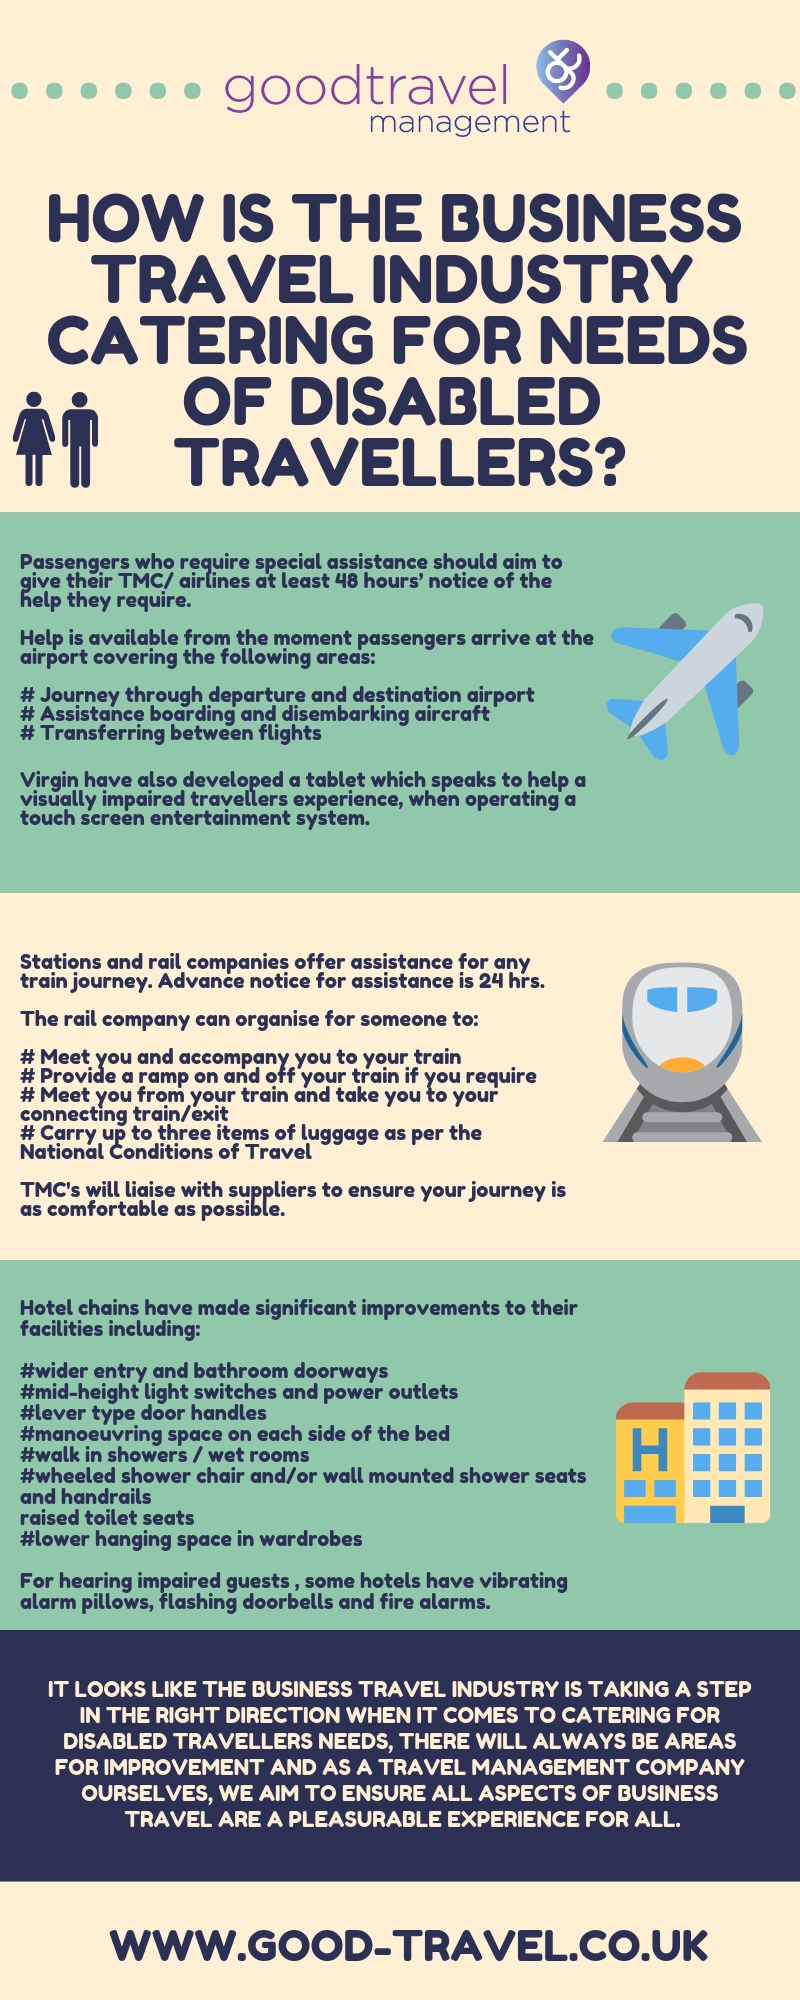 HOW IS THE BUSINESS TRAVEL INDUSTRY CATERING FOR NEEDS OF DISABLED TRAVELLERS_ (1)